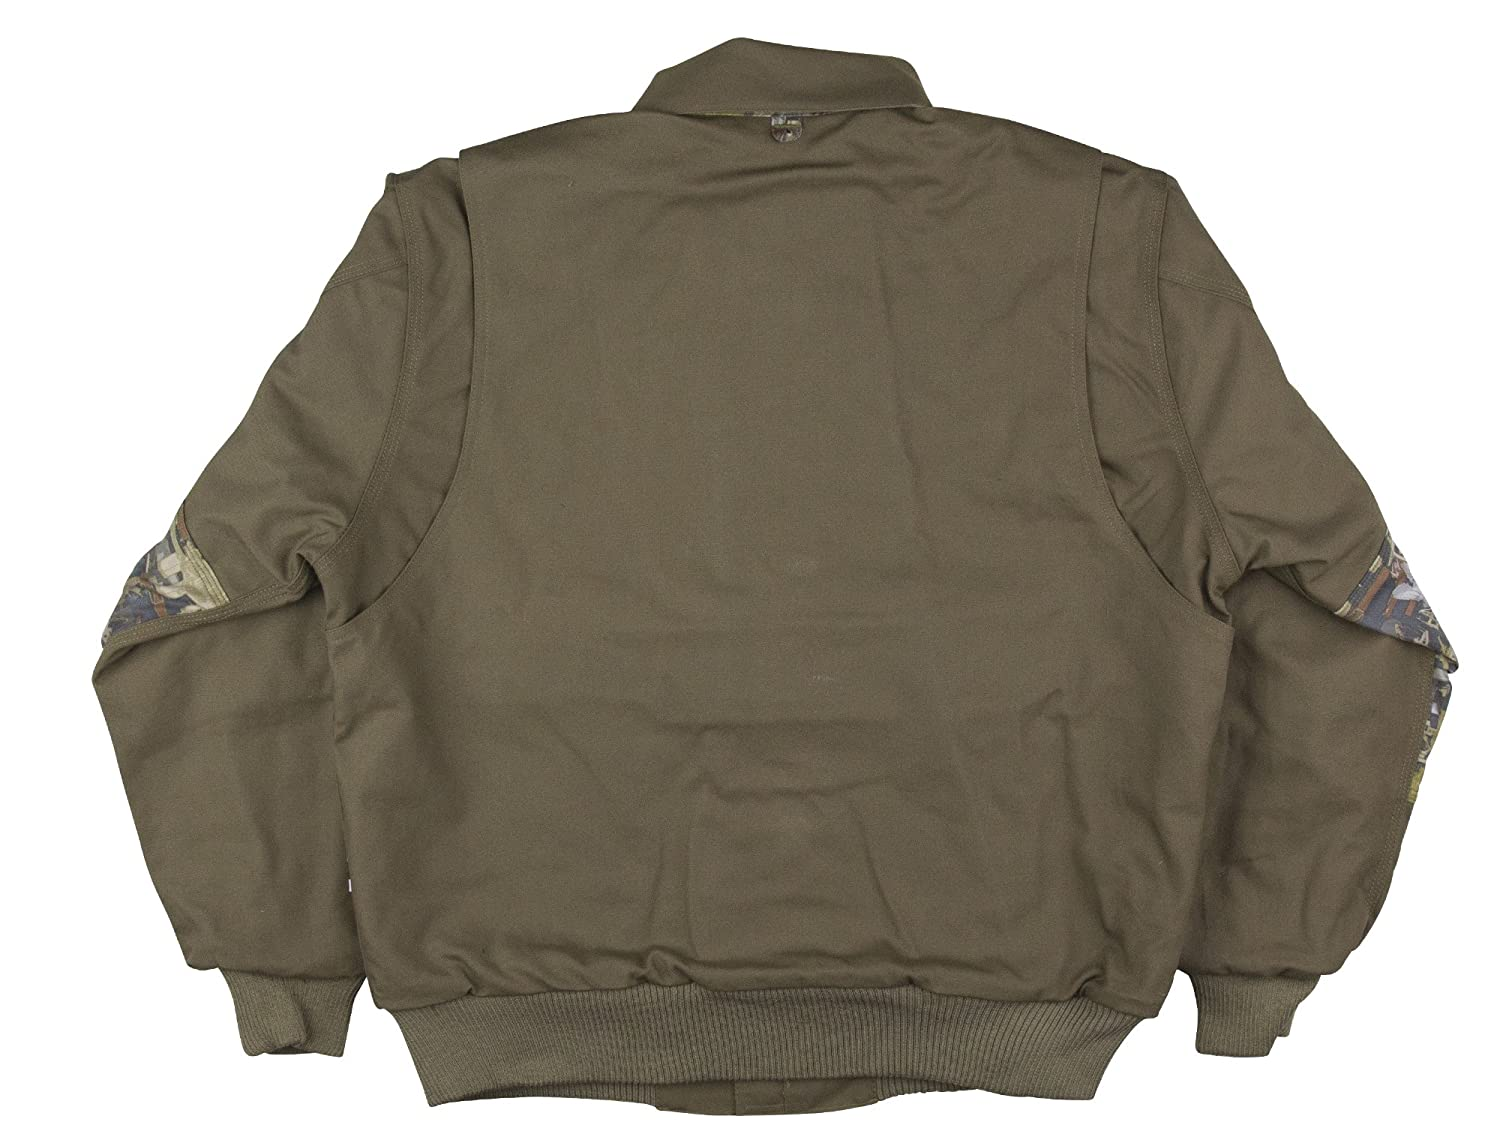 Oil and Gas Safety Supply Flame Resistant Insulated Camo Bomber Jacket